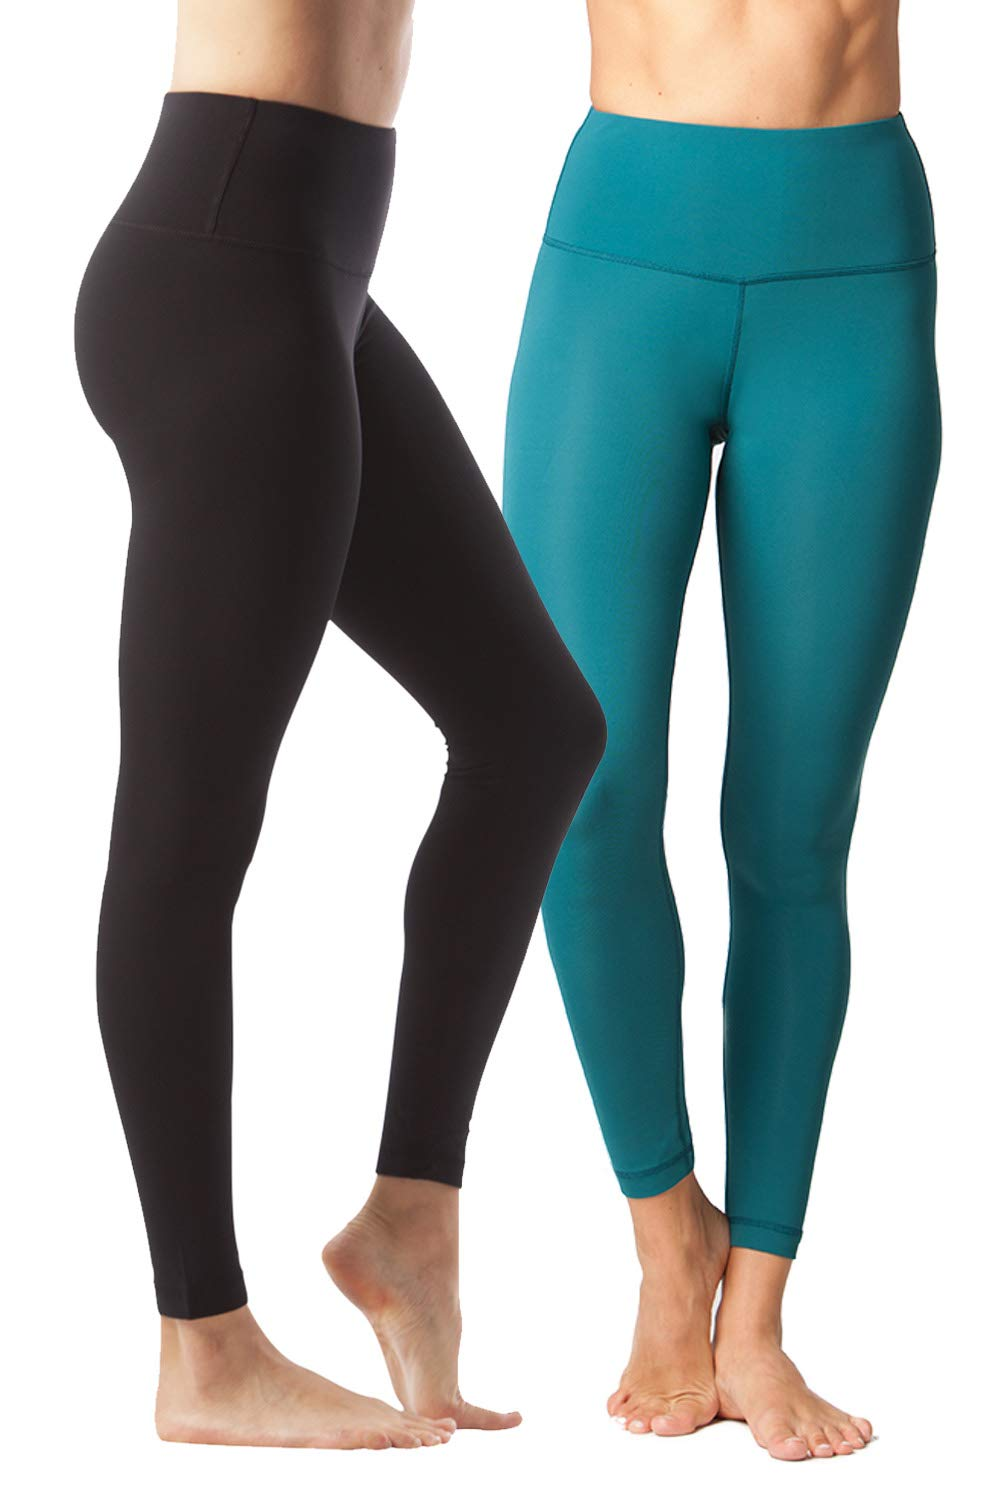 Yogalicious High Waist Ultra Soft Lightweight Leggings -  High Rise Yoga Pants - 2 Pack - Black and Everglade - XS